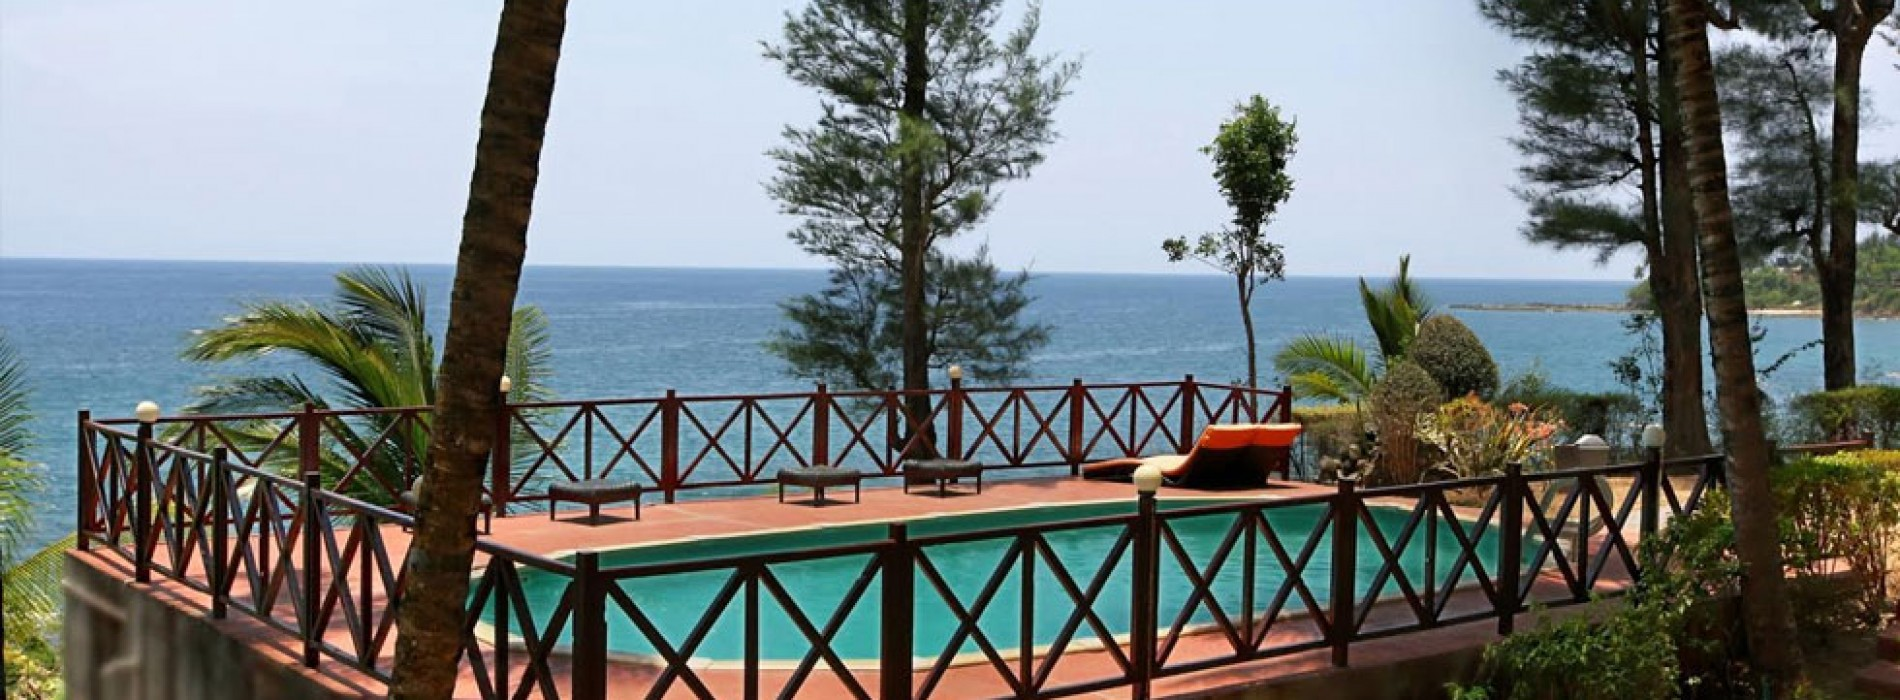 Sinclairs Bayview ranked No. 1 hotel in Port Blair by TripAdvisor